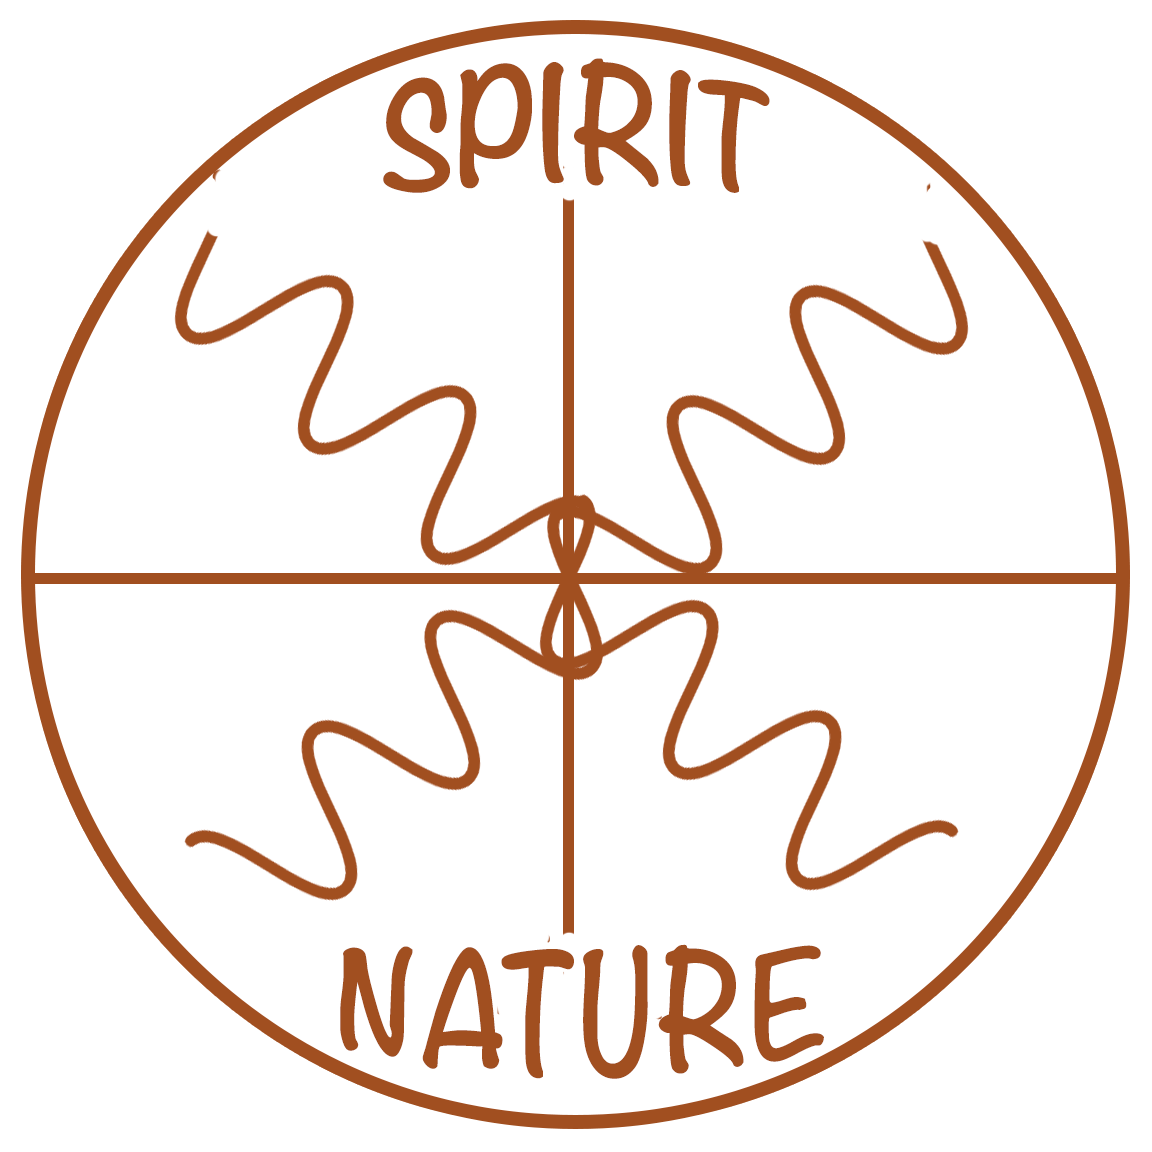 nature spirit and pain